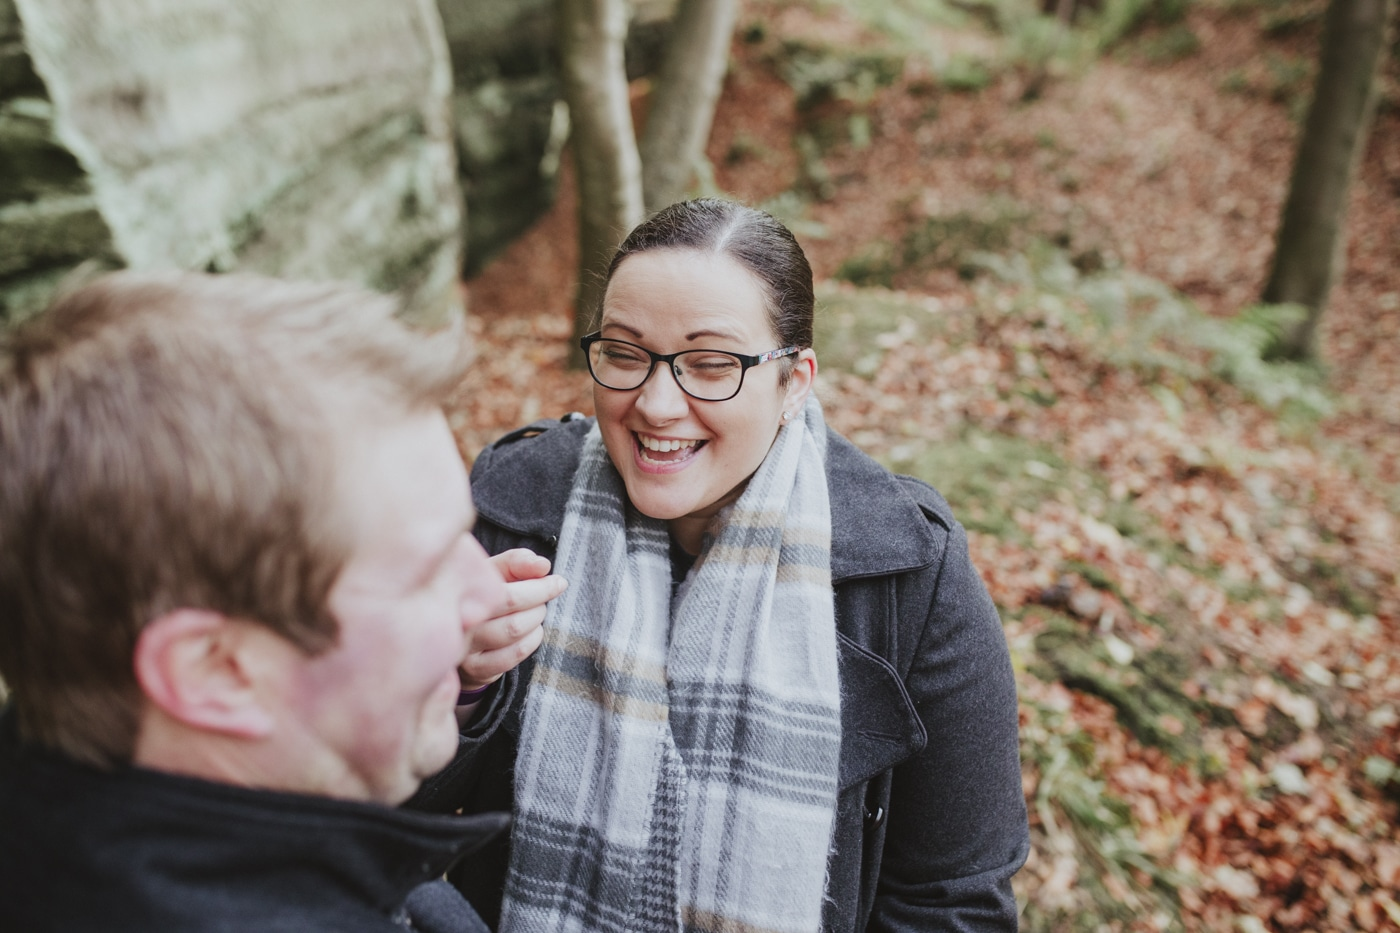 Woman laughing at man in check scarf during portrait session